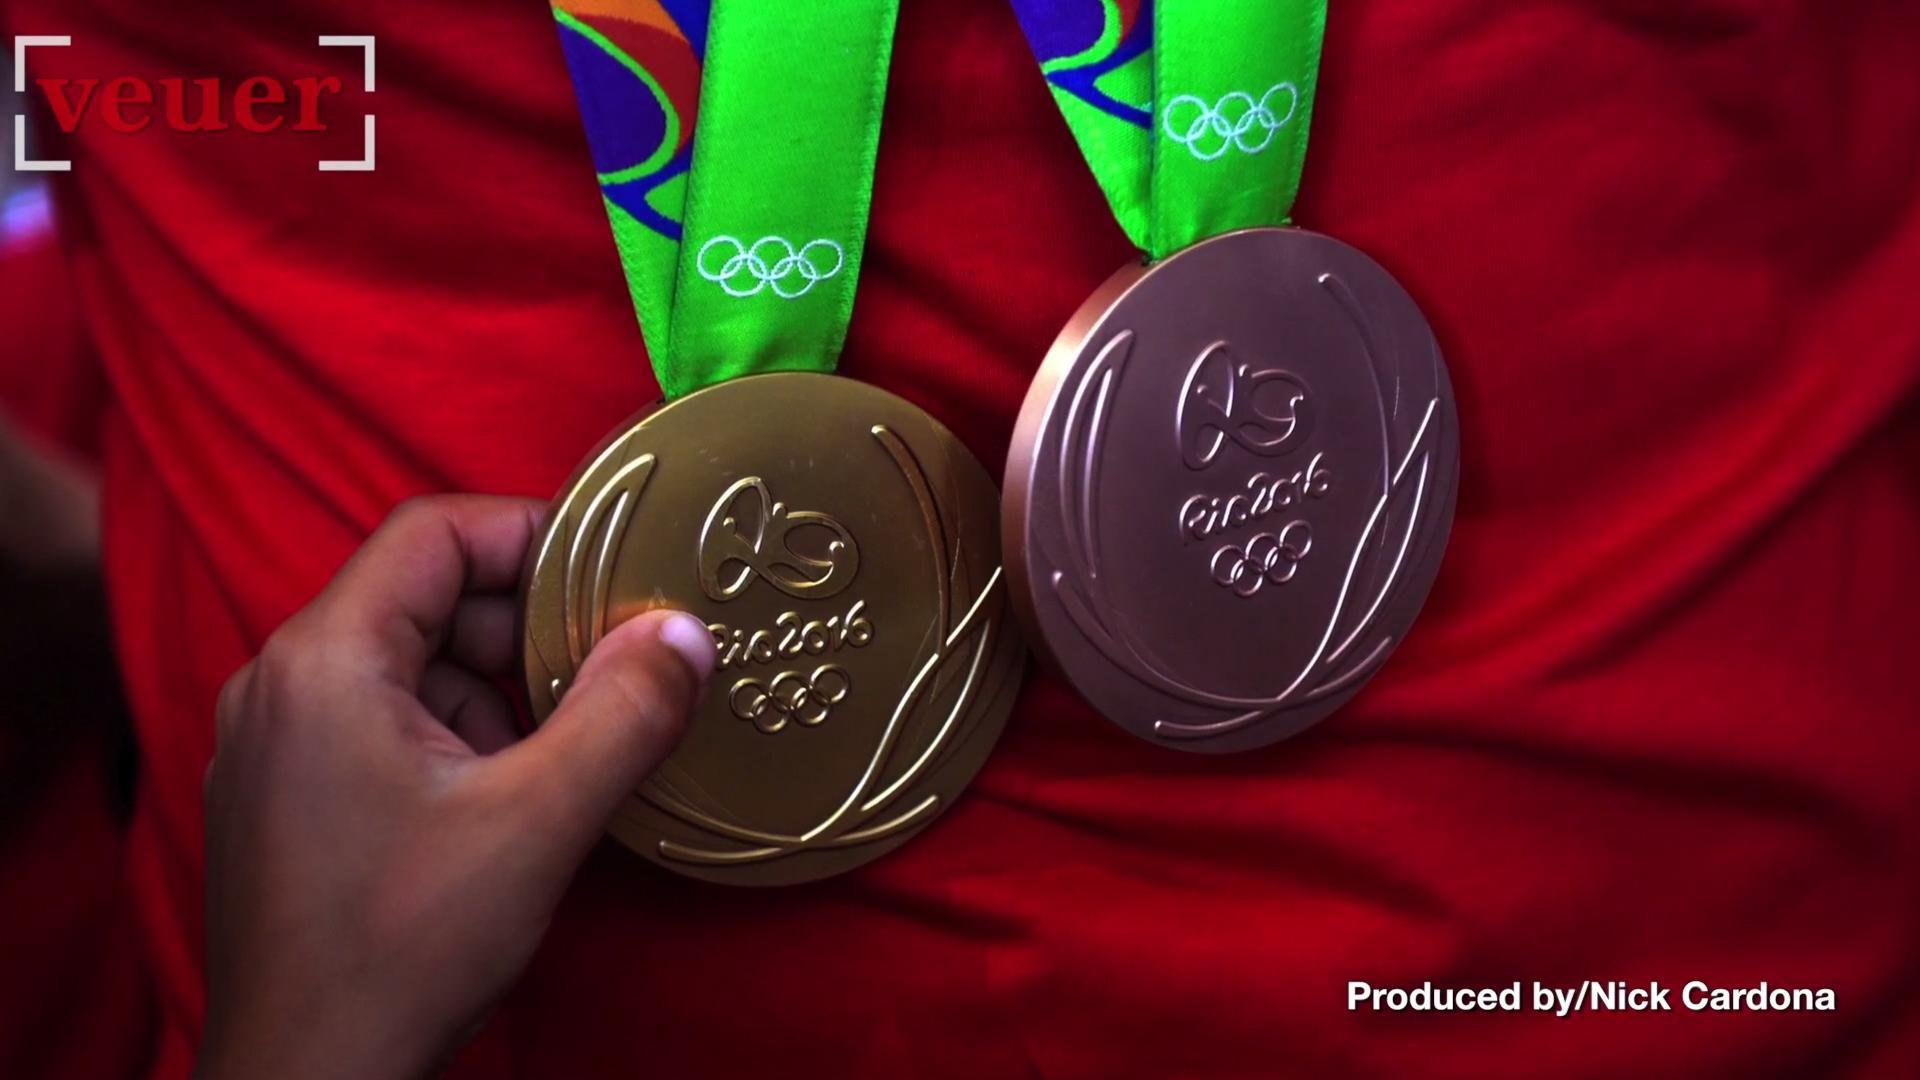 Olympic Athlete Gets Medal 9 Years After Competition